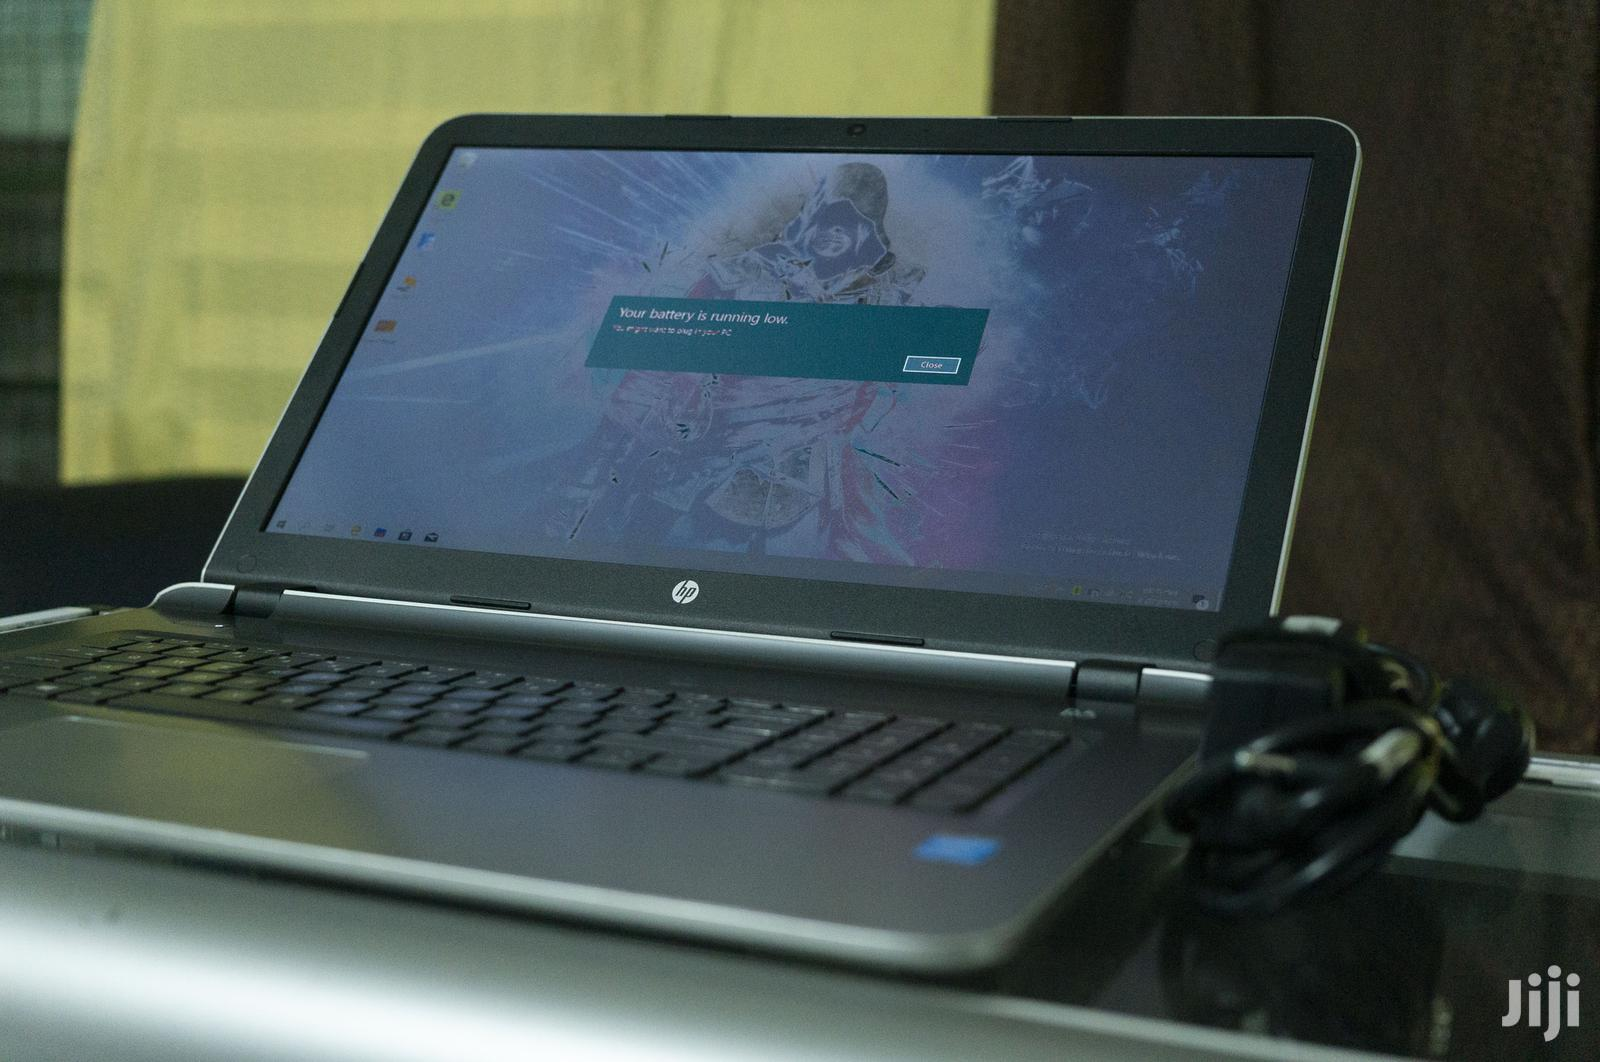 Laptop HP Pavilion 17 8GB Intel Core I5 HDD 1T | Laptops & Computers for sale in Accra Metropolitan, Greater Accra, Ghana